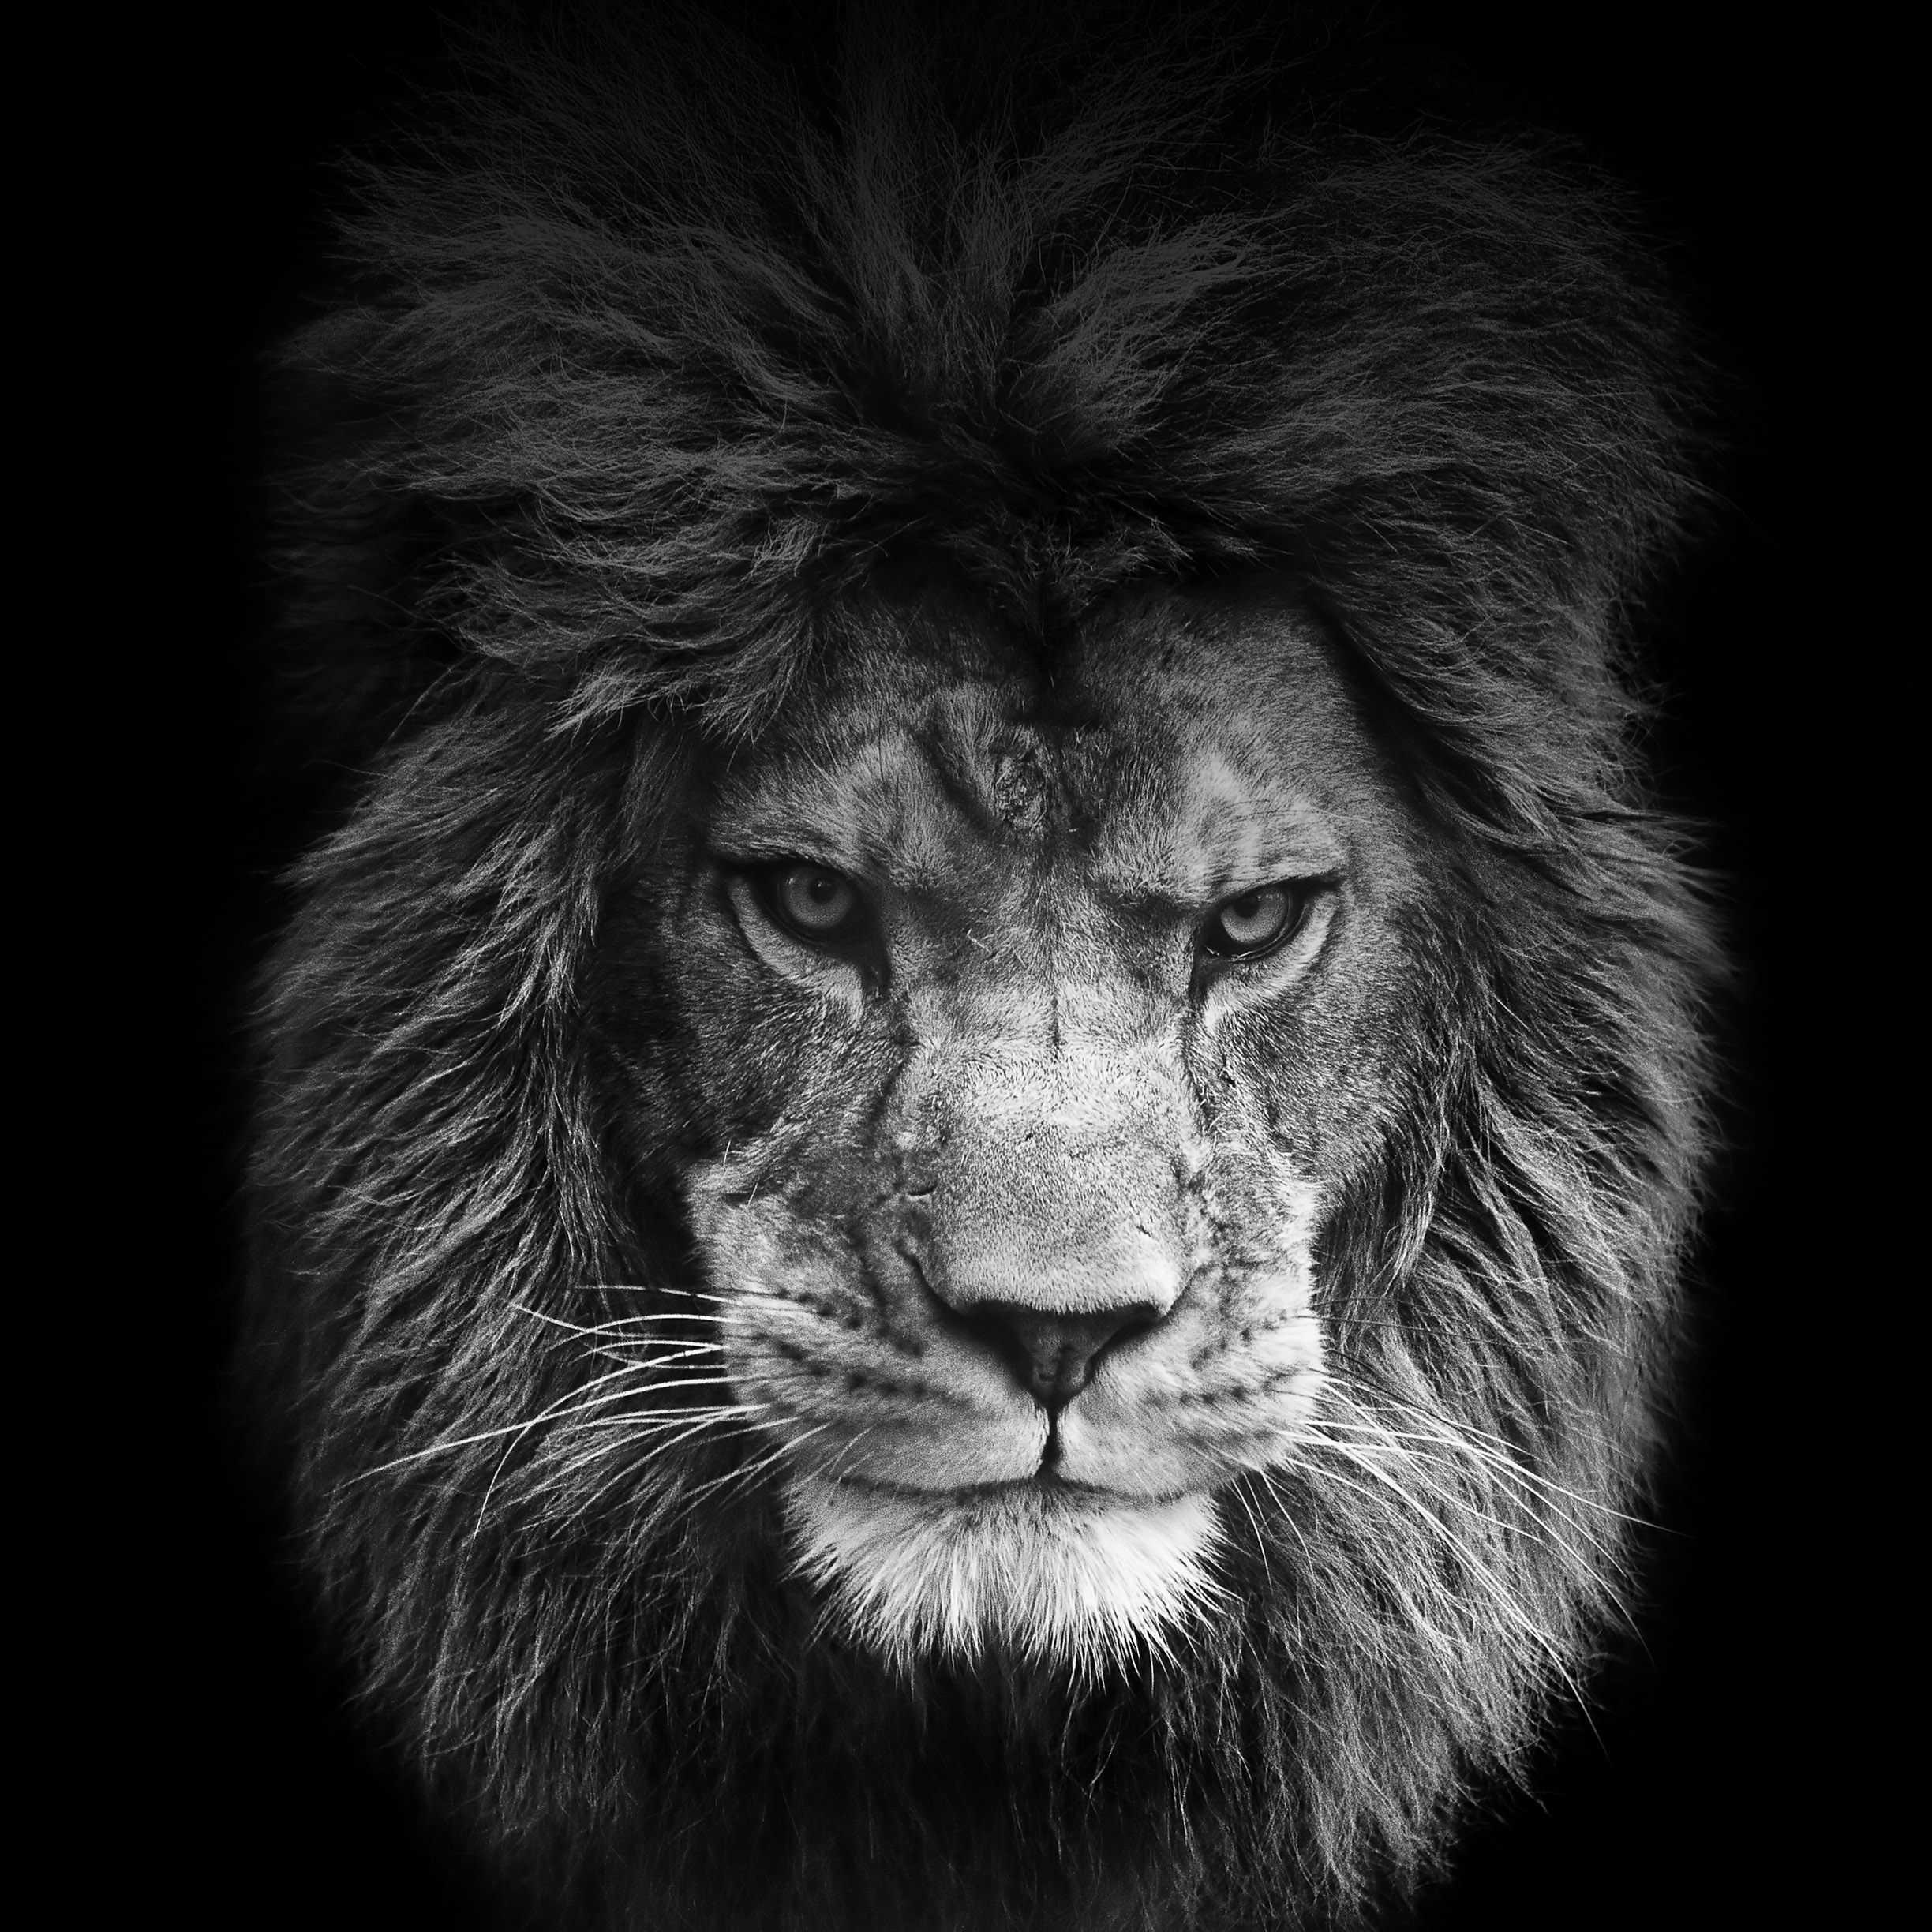 10+ ideas about Lion Wallpaper on Pinterest | Leon, Hakuna matata